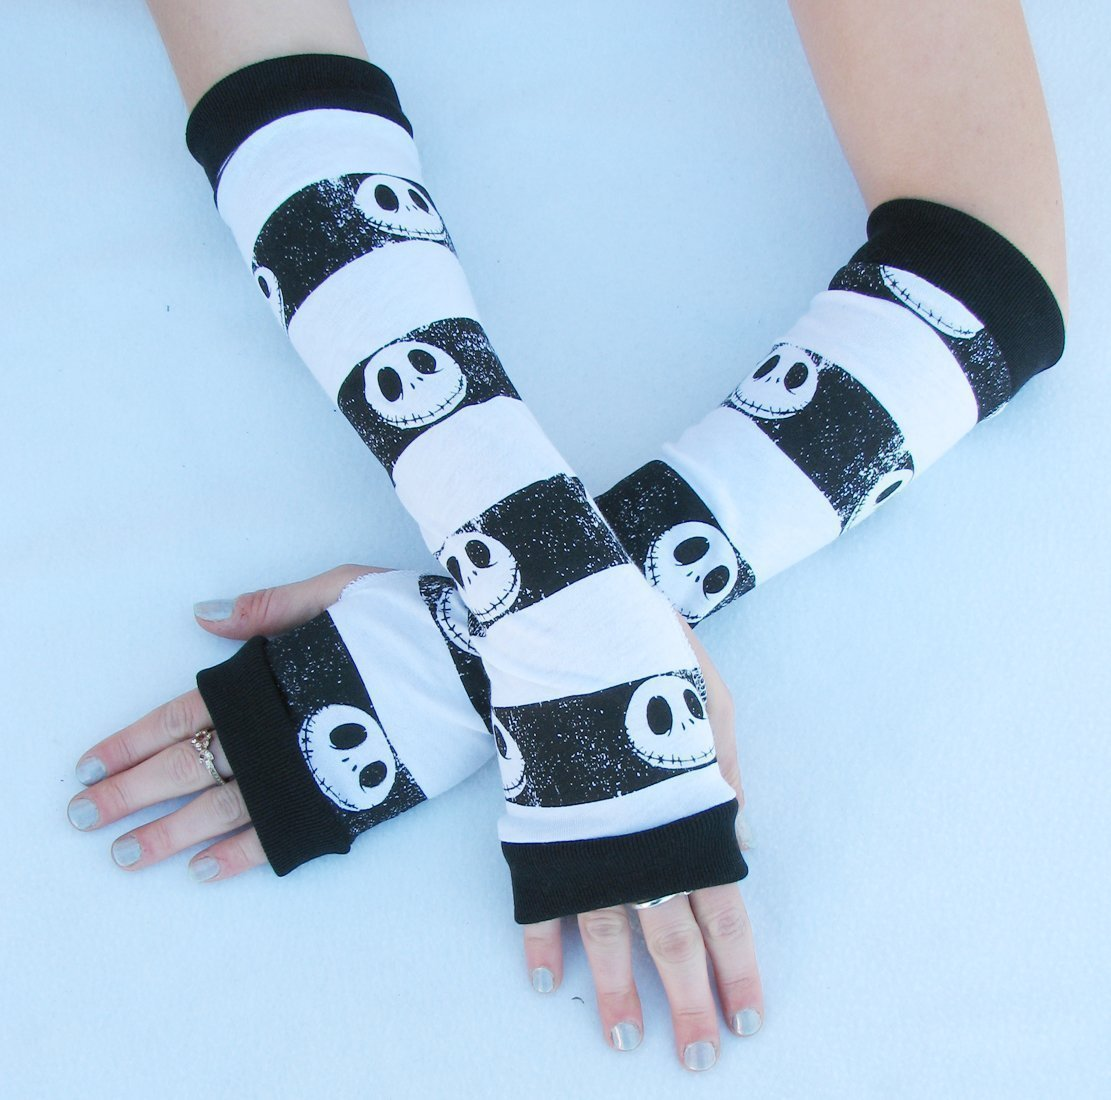 Jack Skull Arm Warmers Stripes Gloves Nightmare Before Christmas